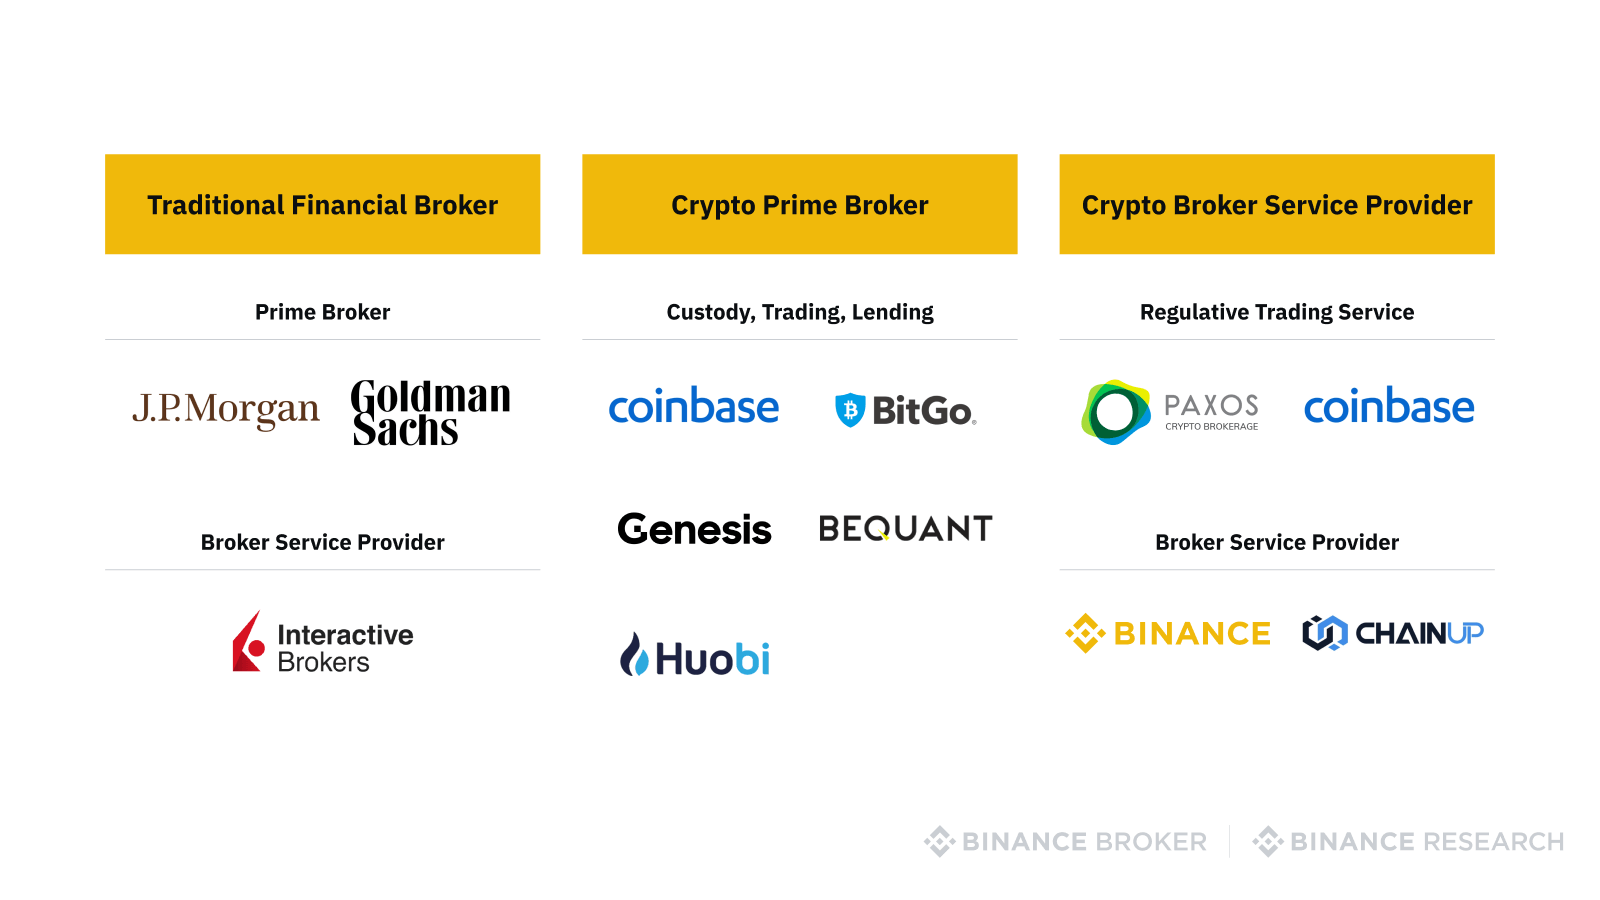 Comparison of companies in traditional and crypto broker businesses